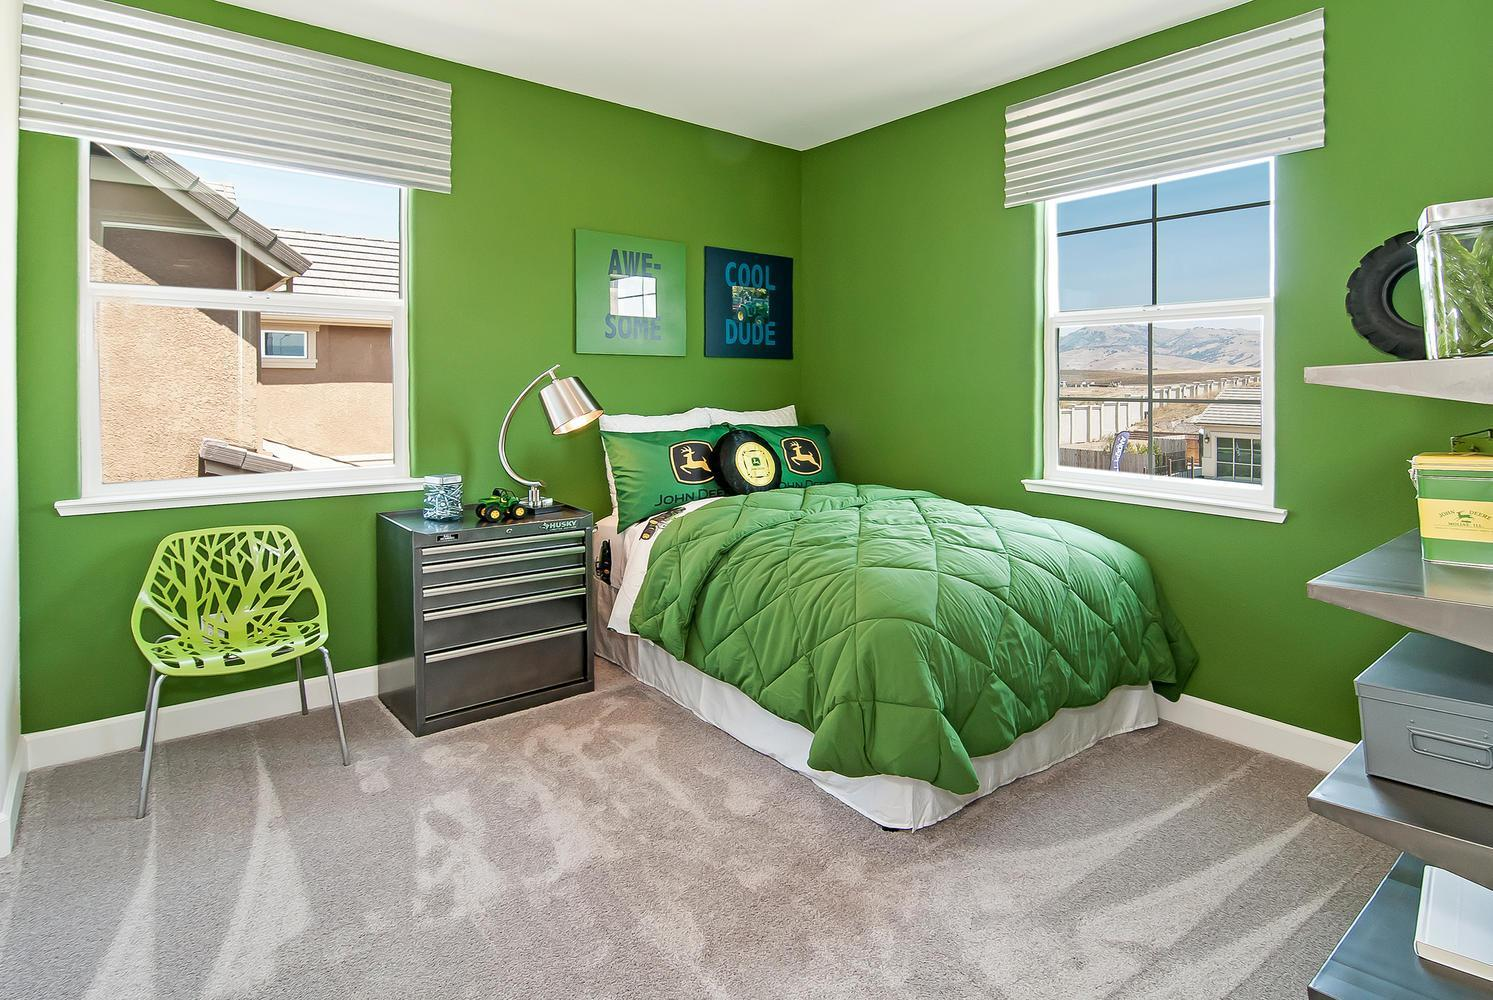 Bedroom featured in the Residence 4 By Legacy Homes in Santa Cruz, CA